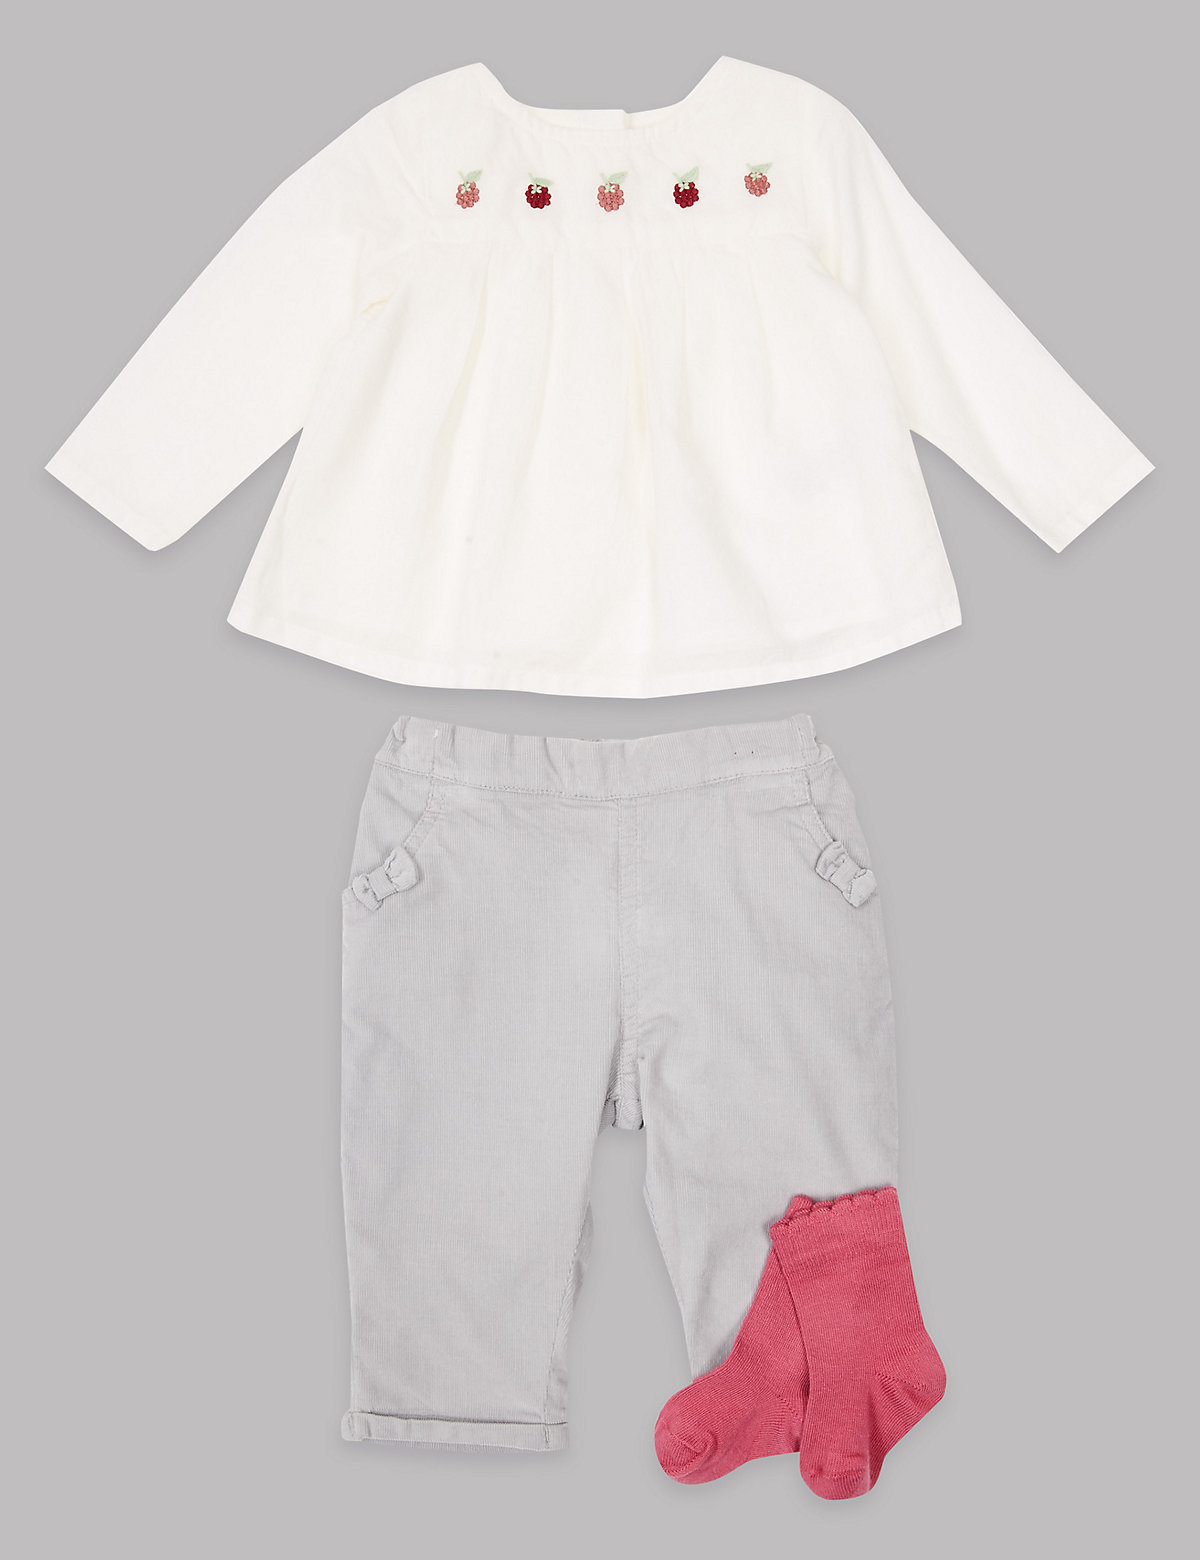 Autograph 3 Piece Top & Cord Trousers with Socks Outfit